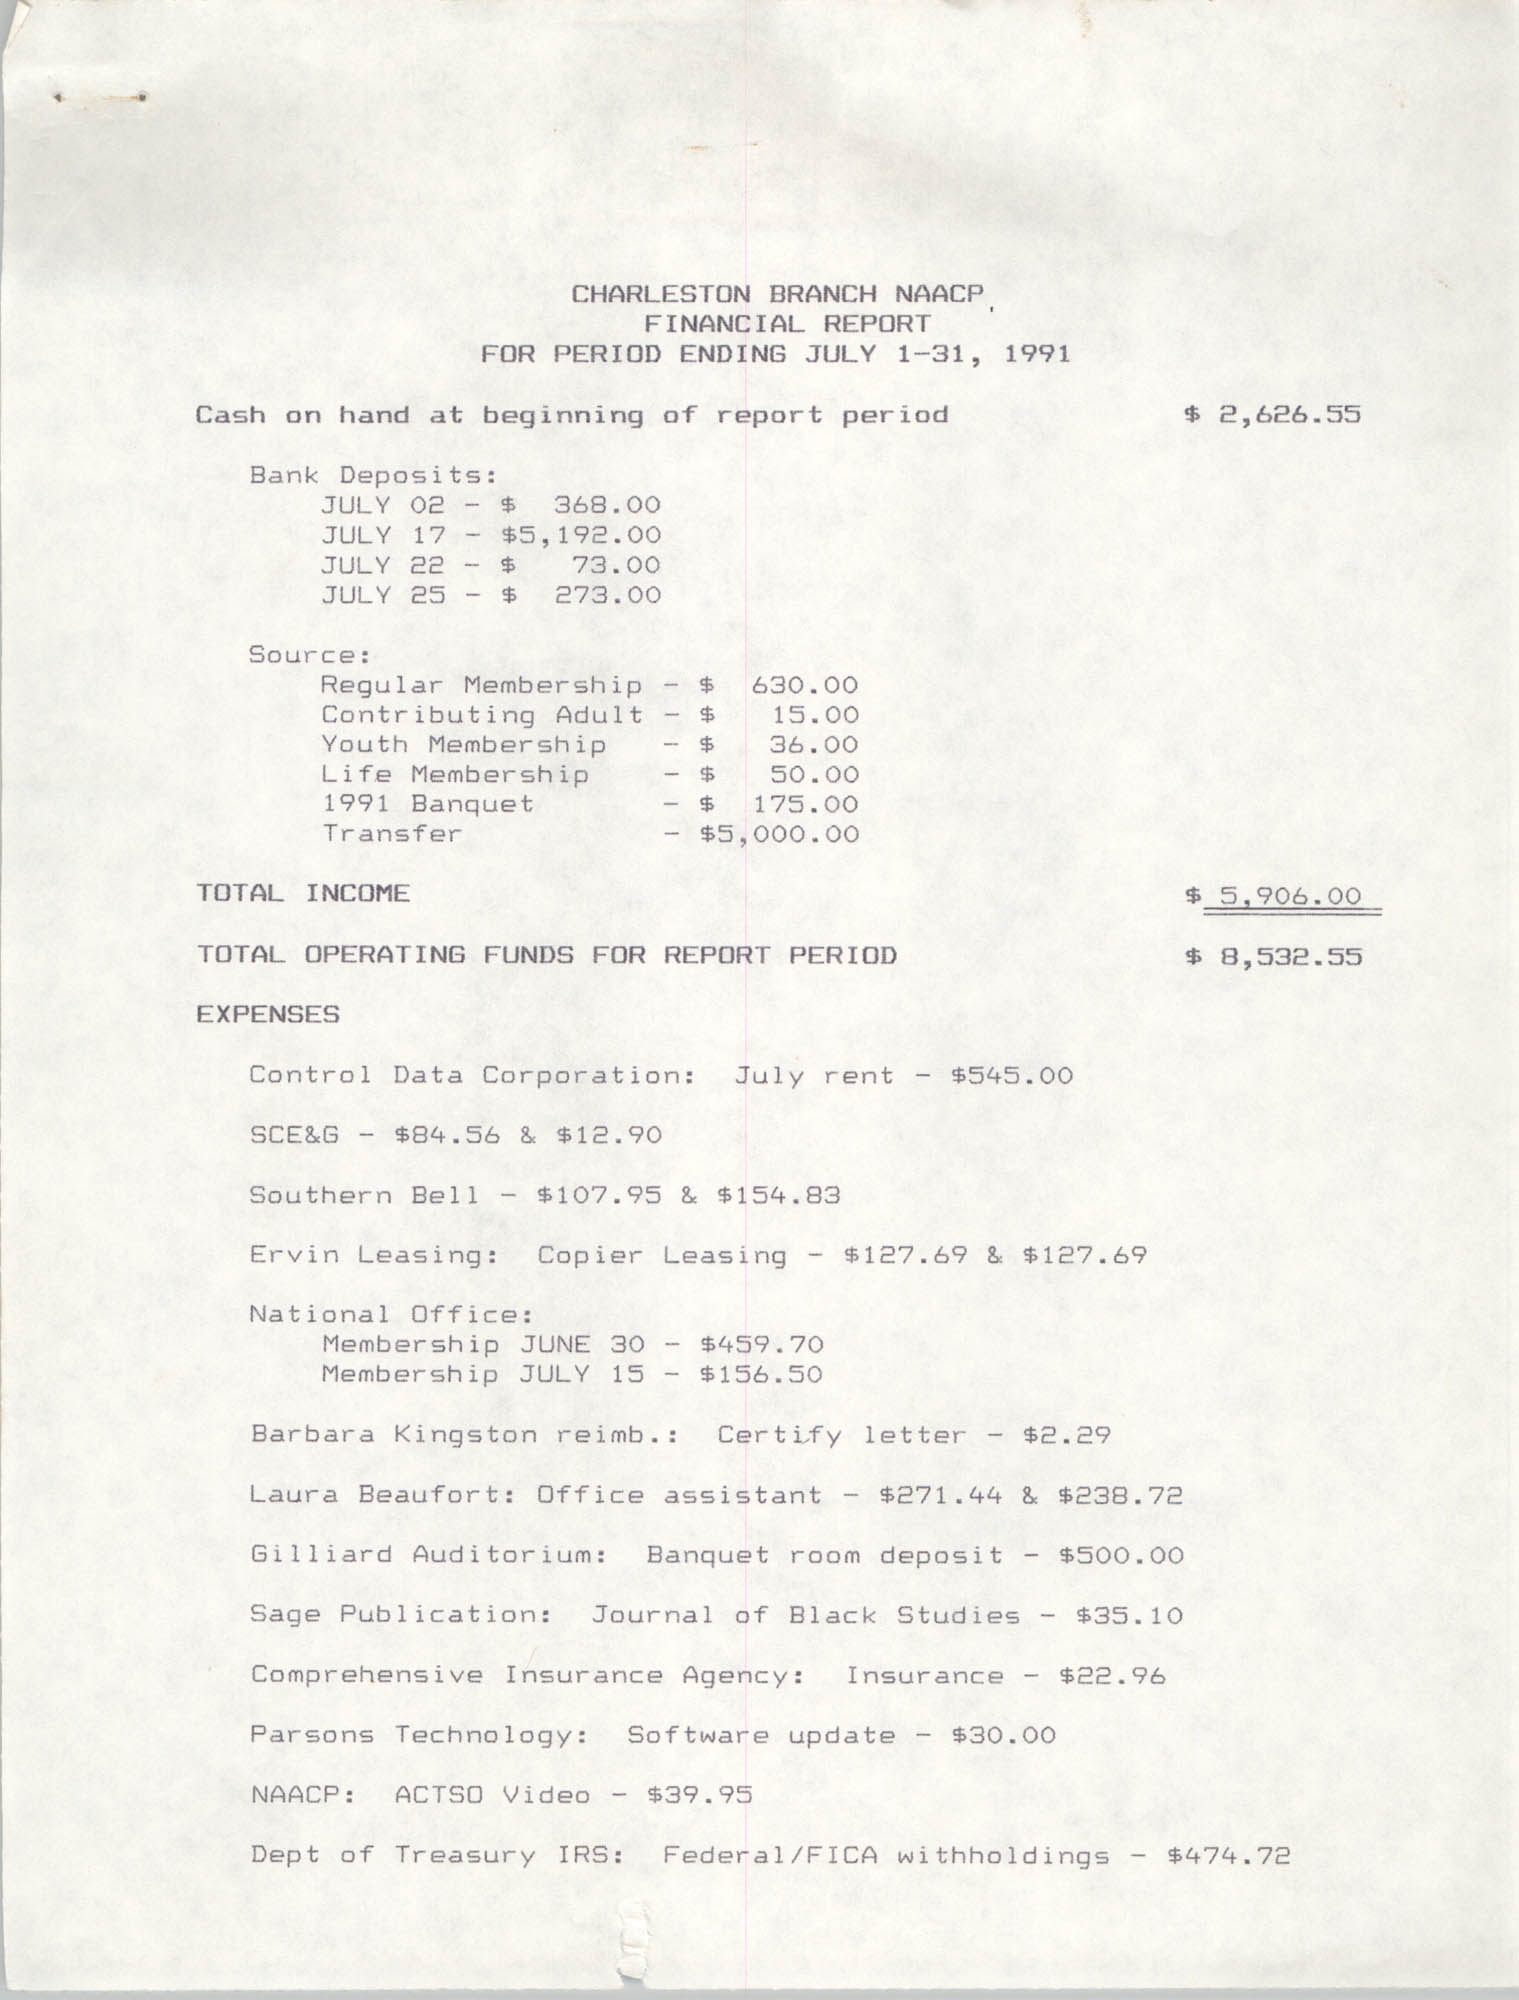 Charleston Branch of the NAACP Financial Report, July 1991, Page 1